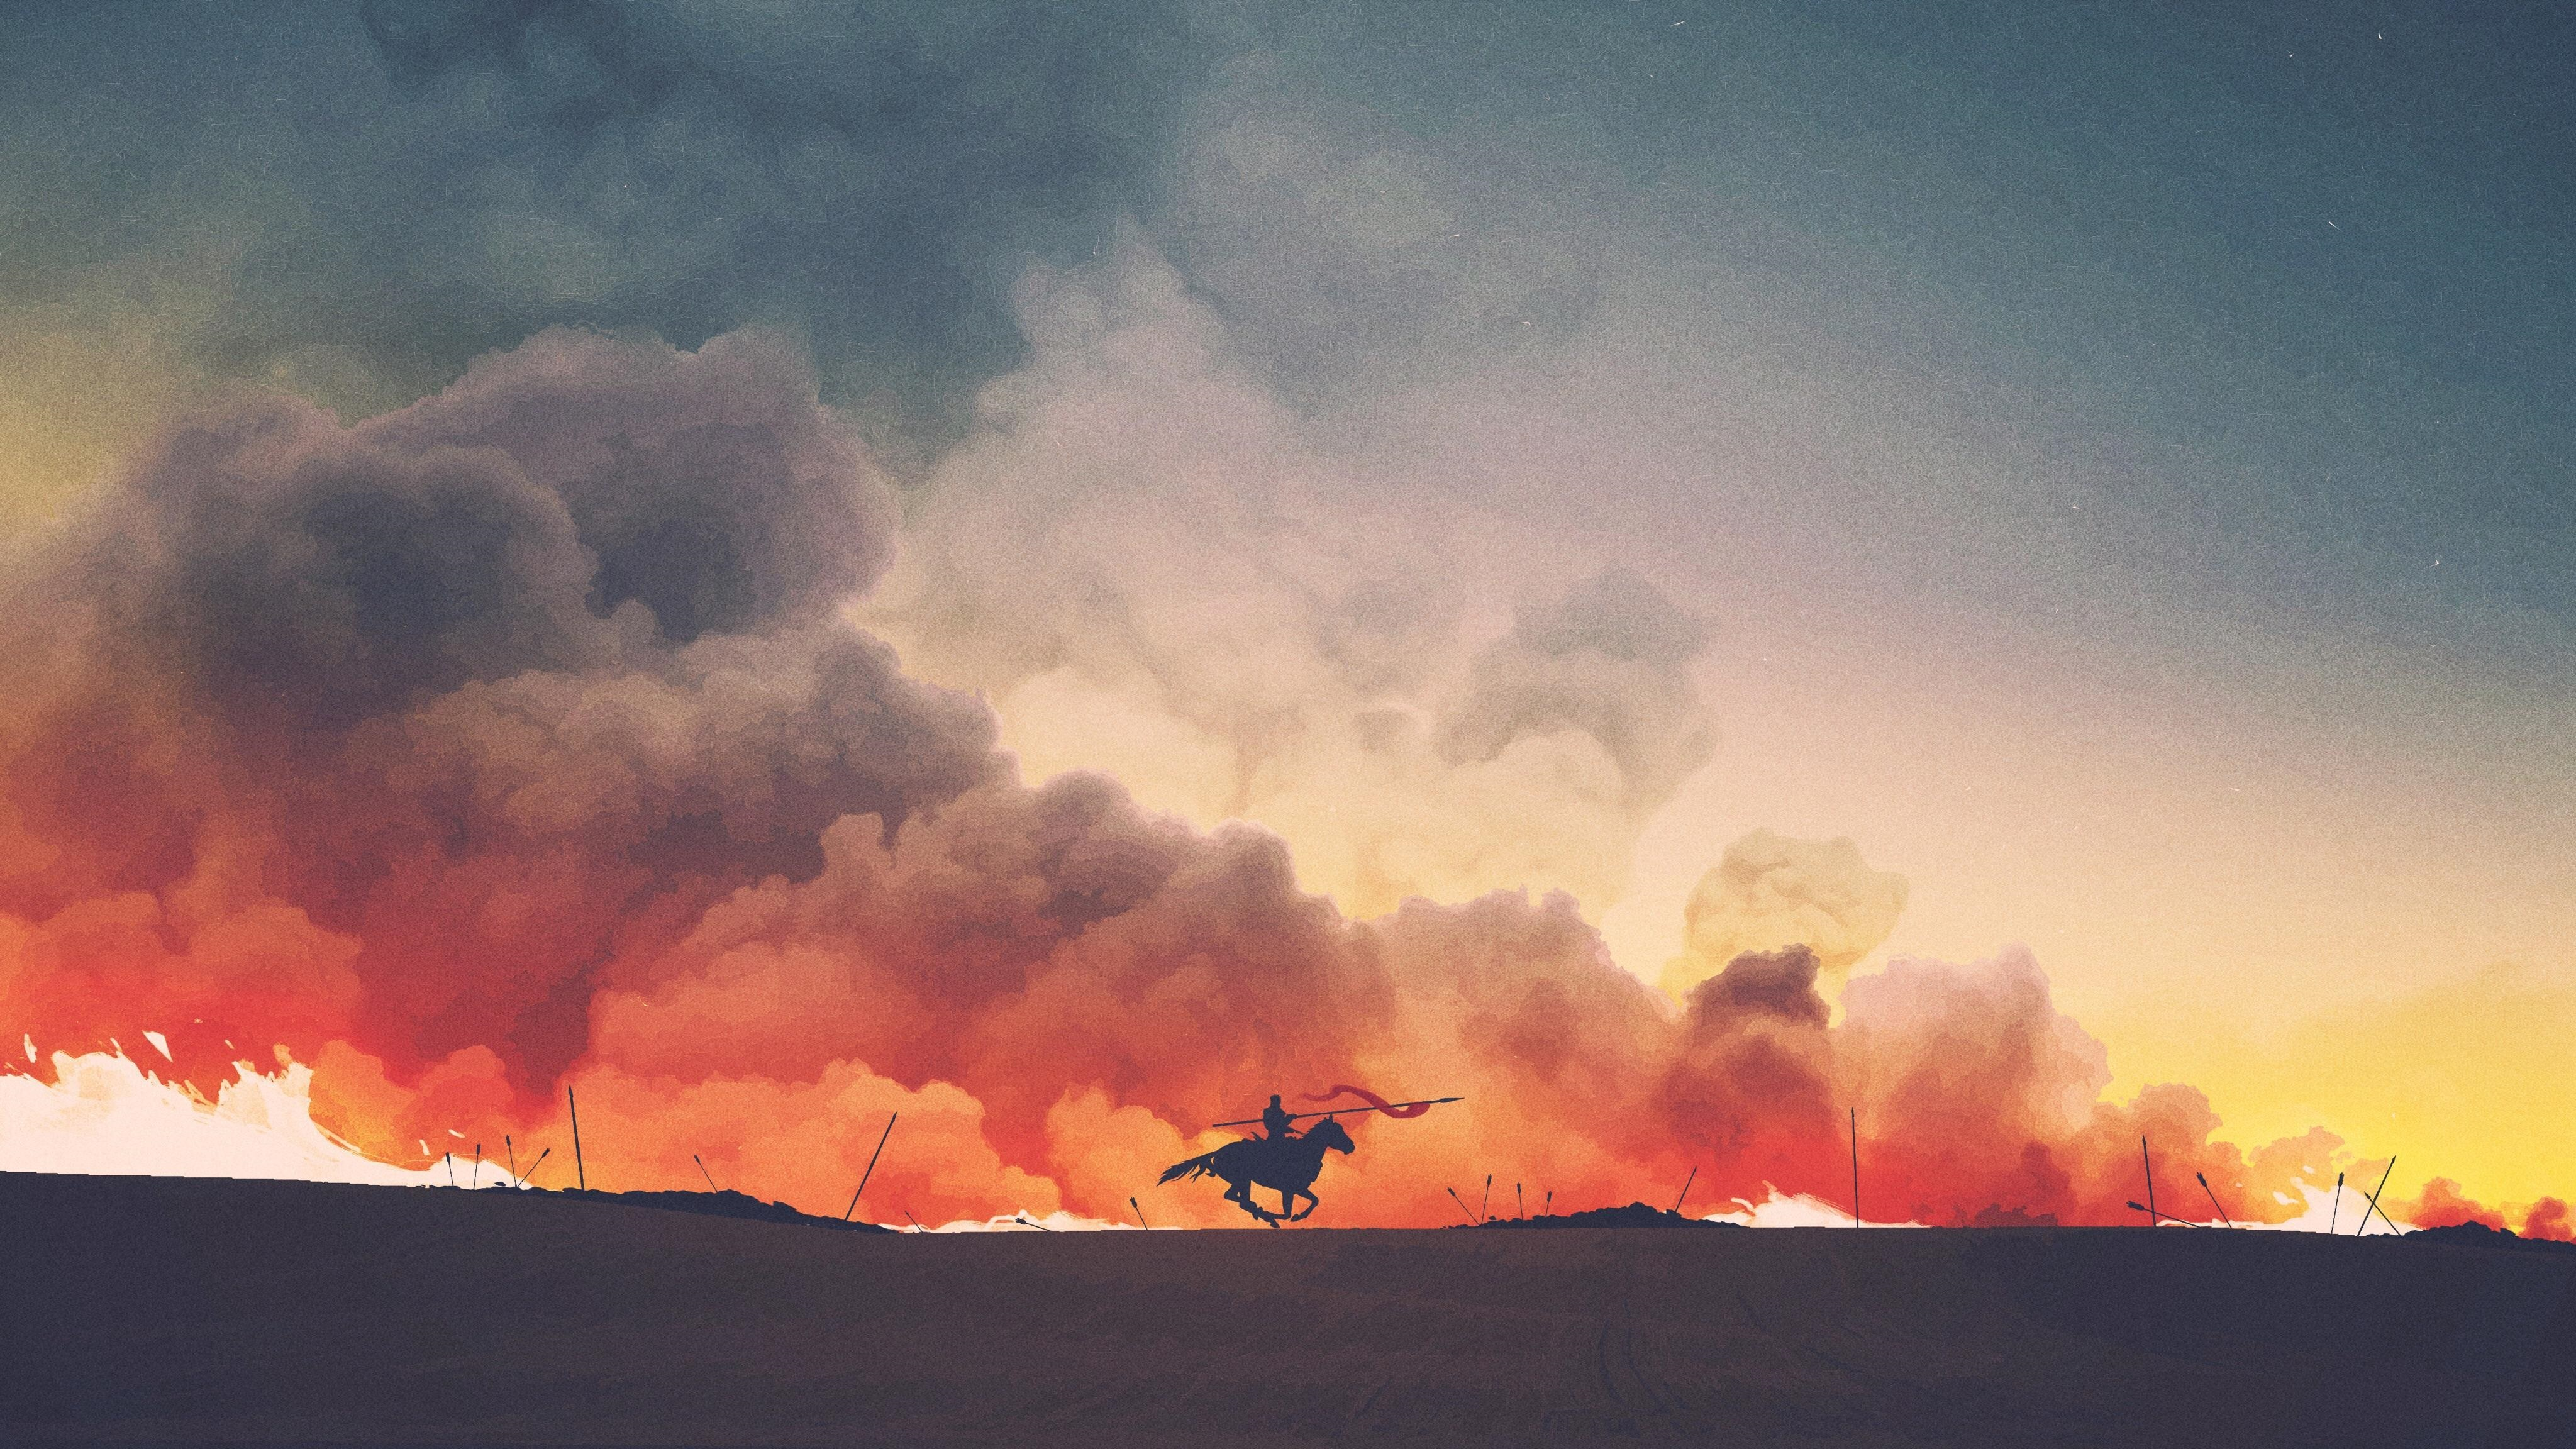 Game Of Thrones A Song Of Ice And Fire Hd Artist 4k Wallpapers